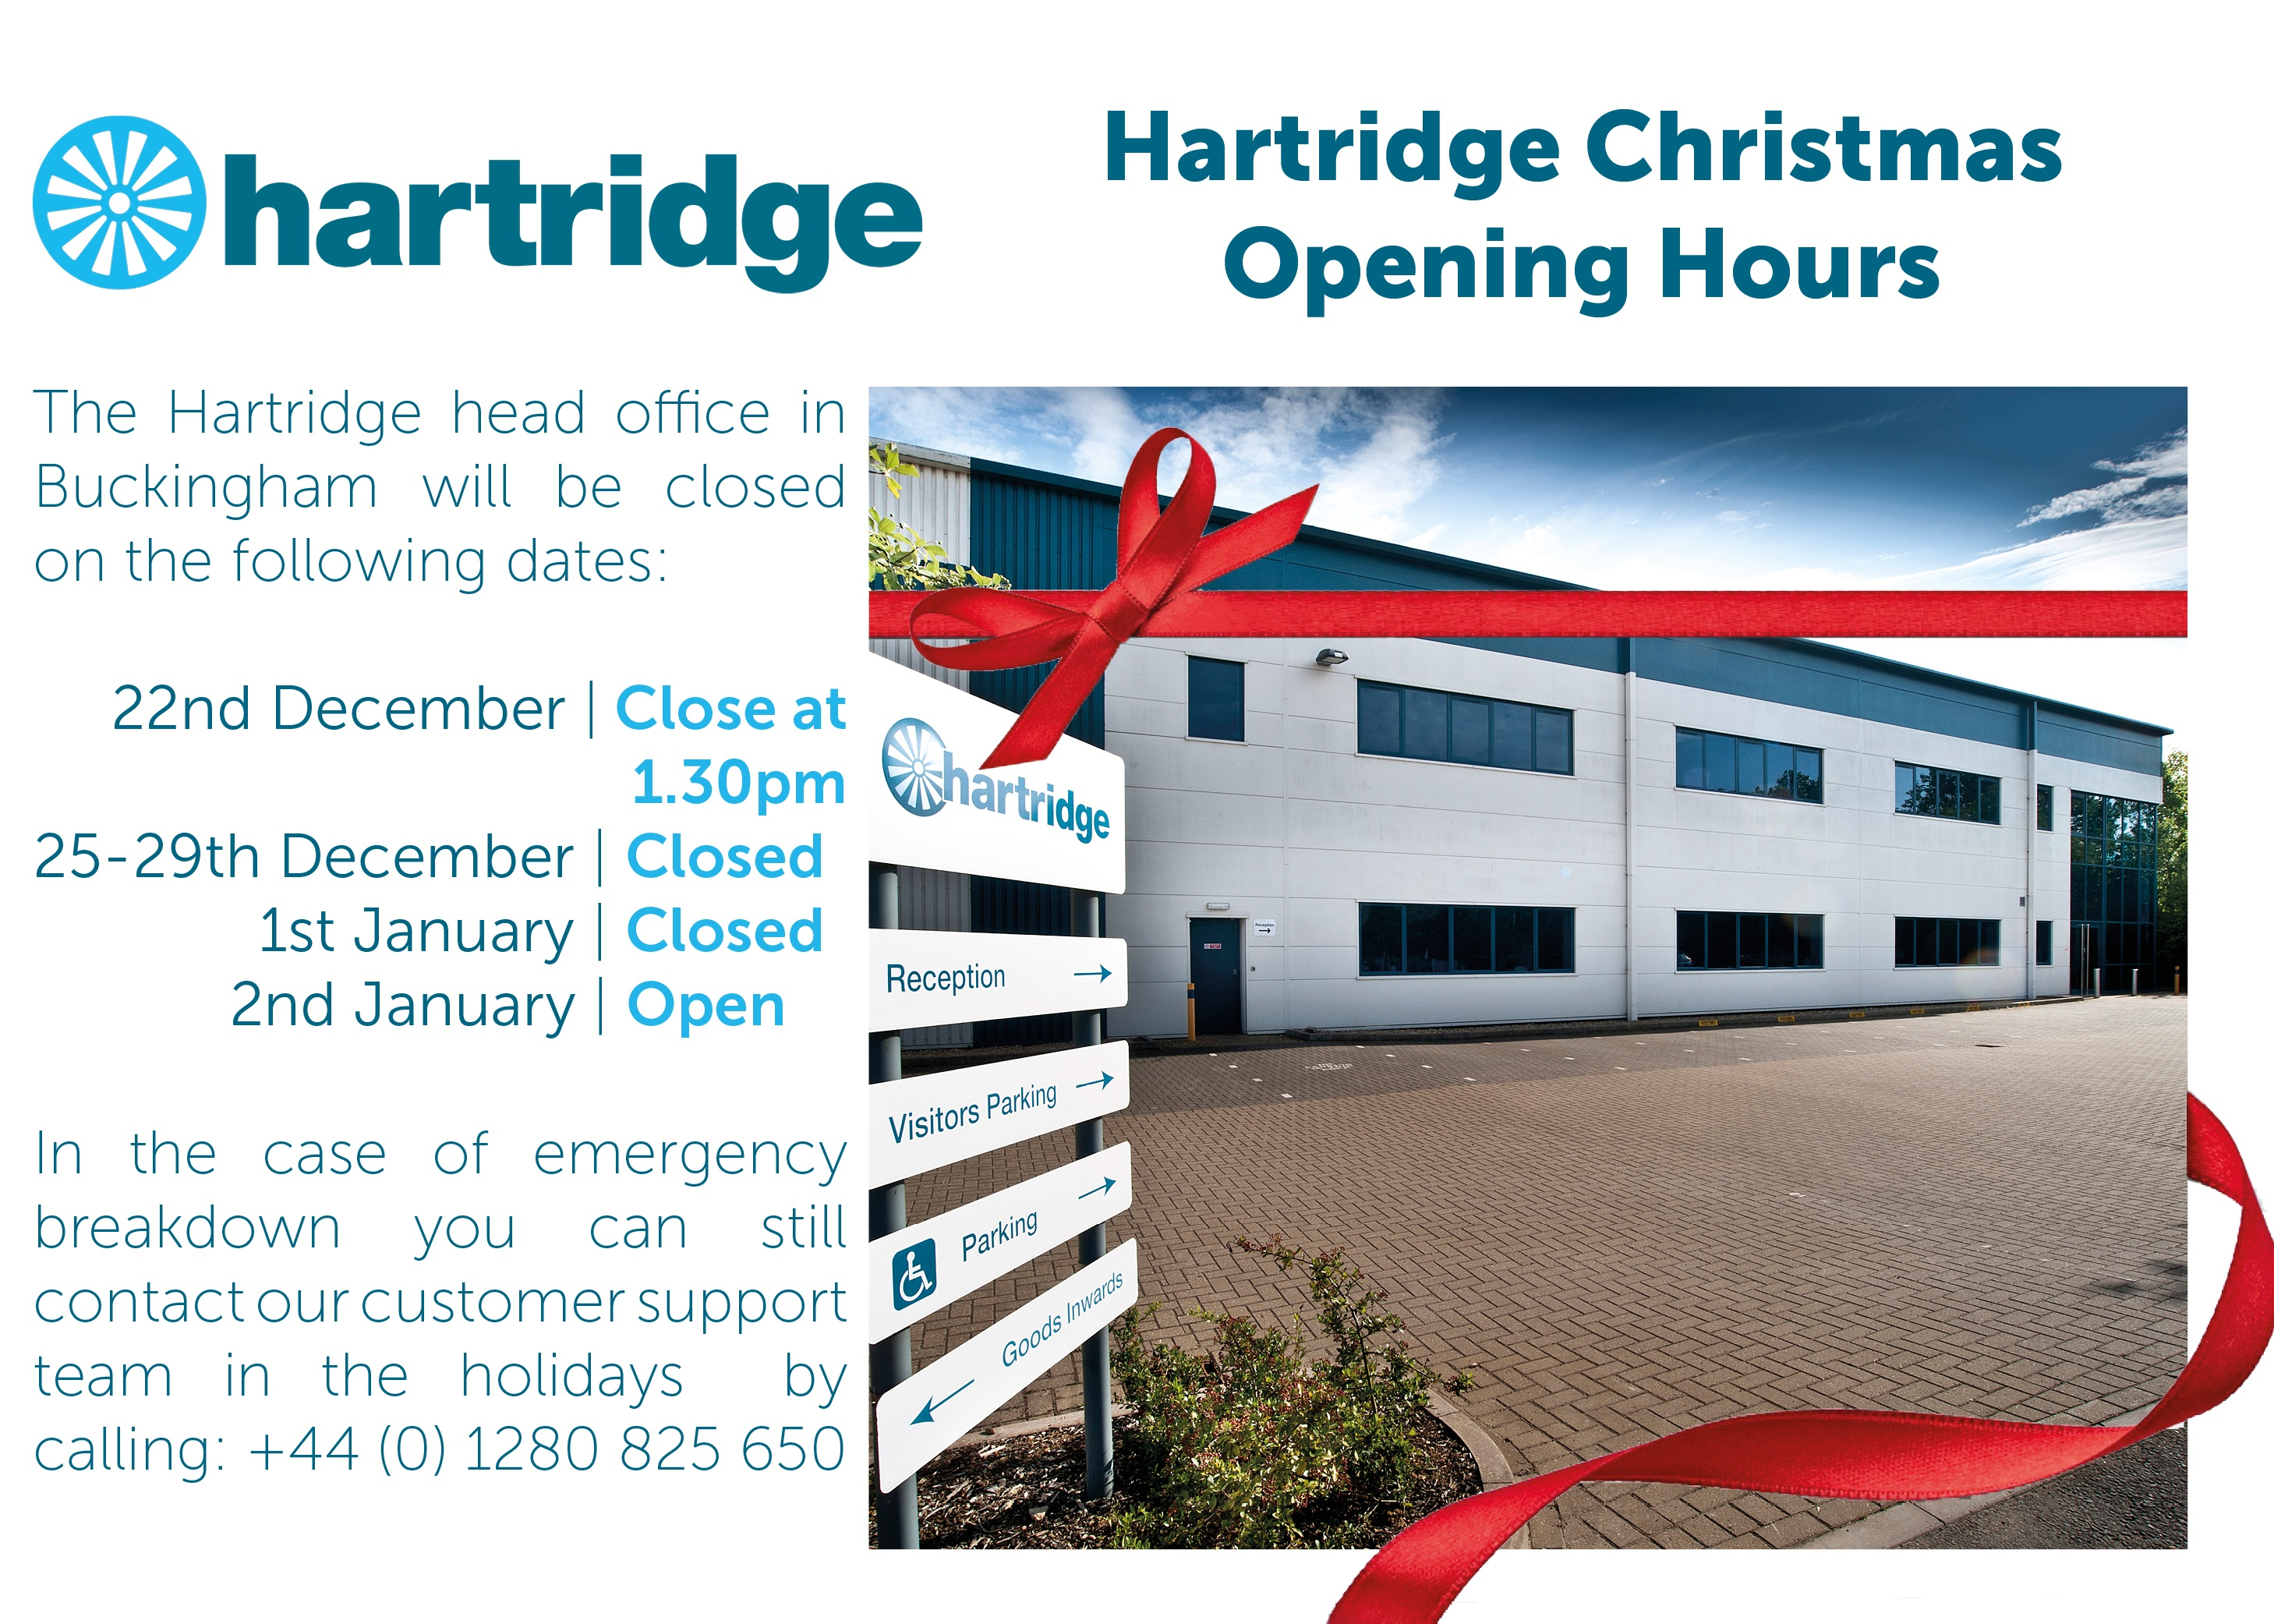 Hartridge Christmas Opening Hours